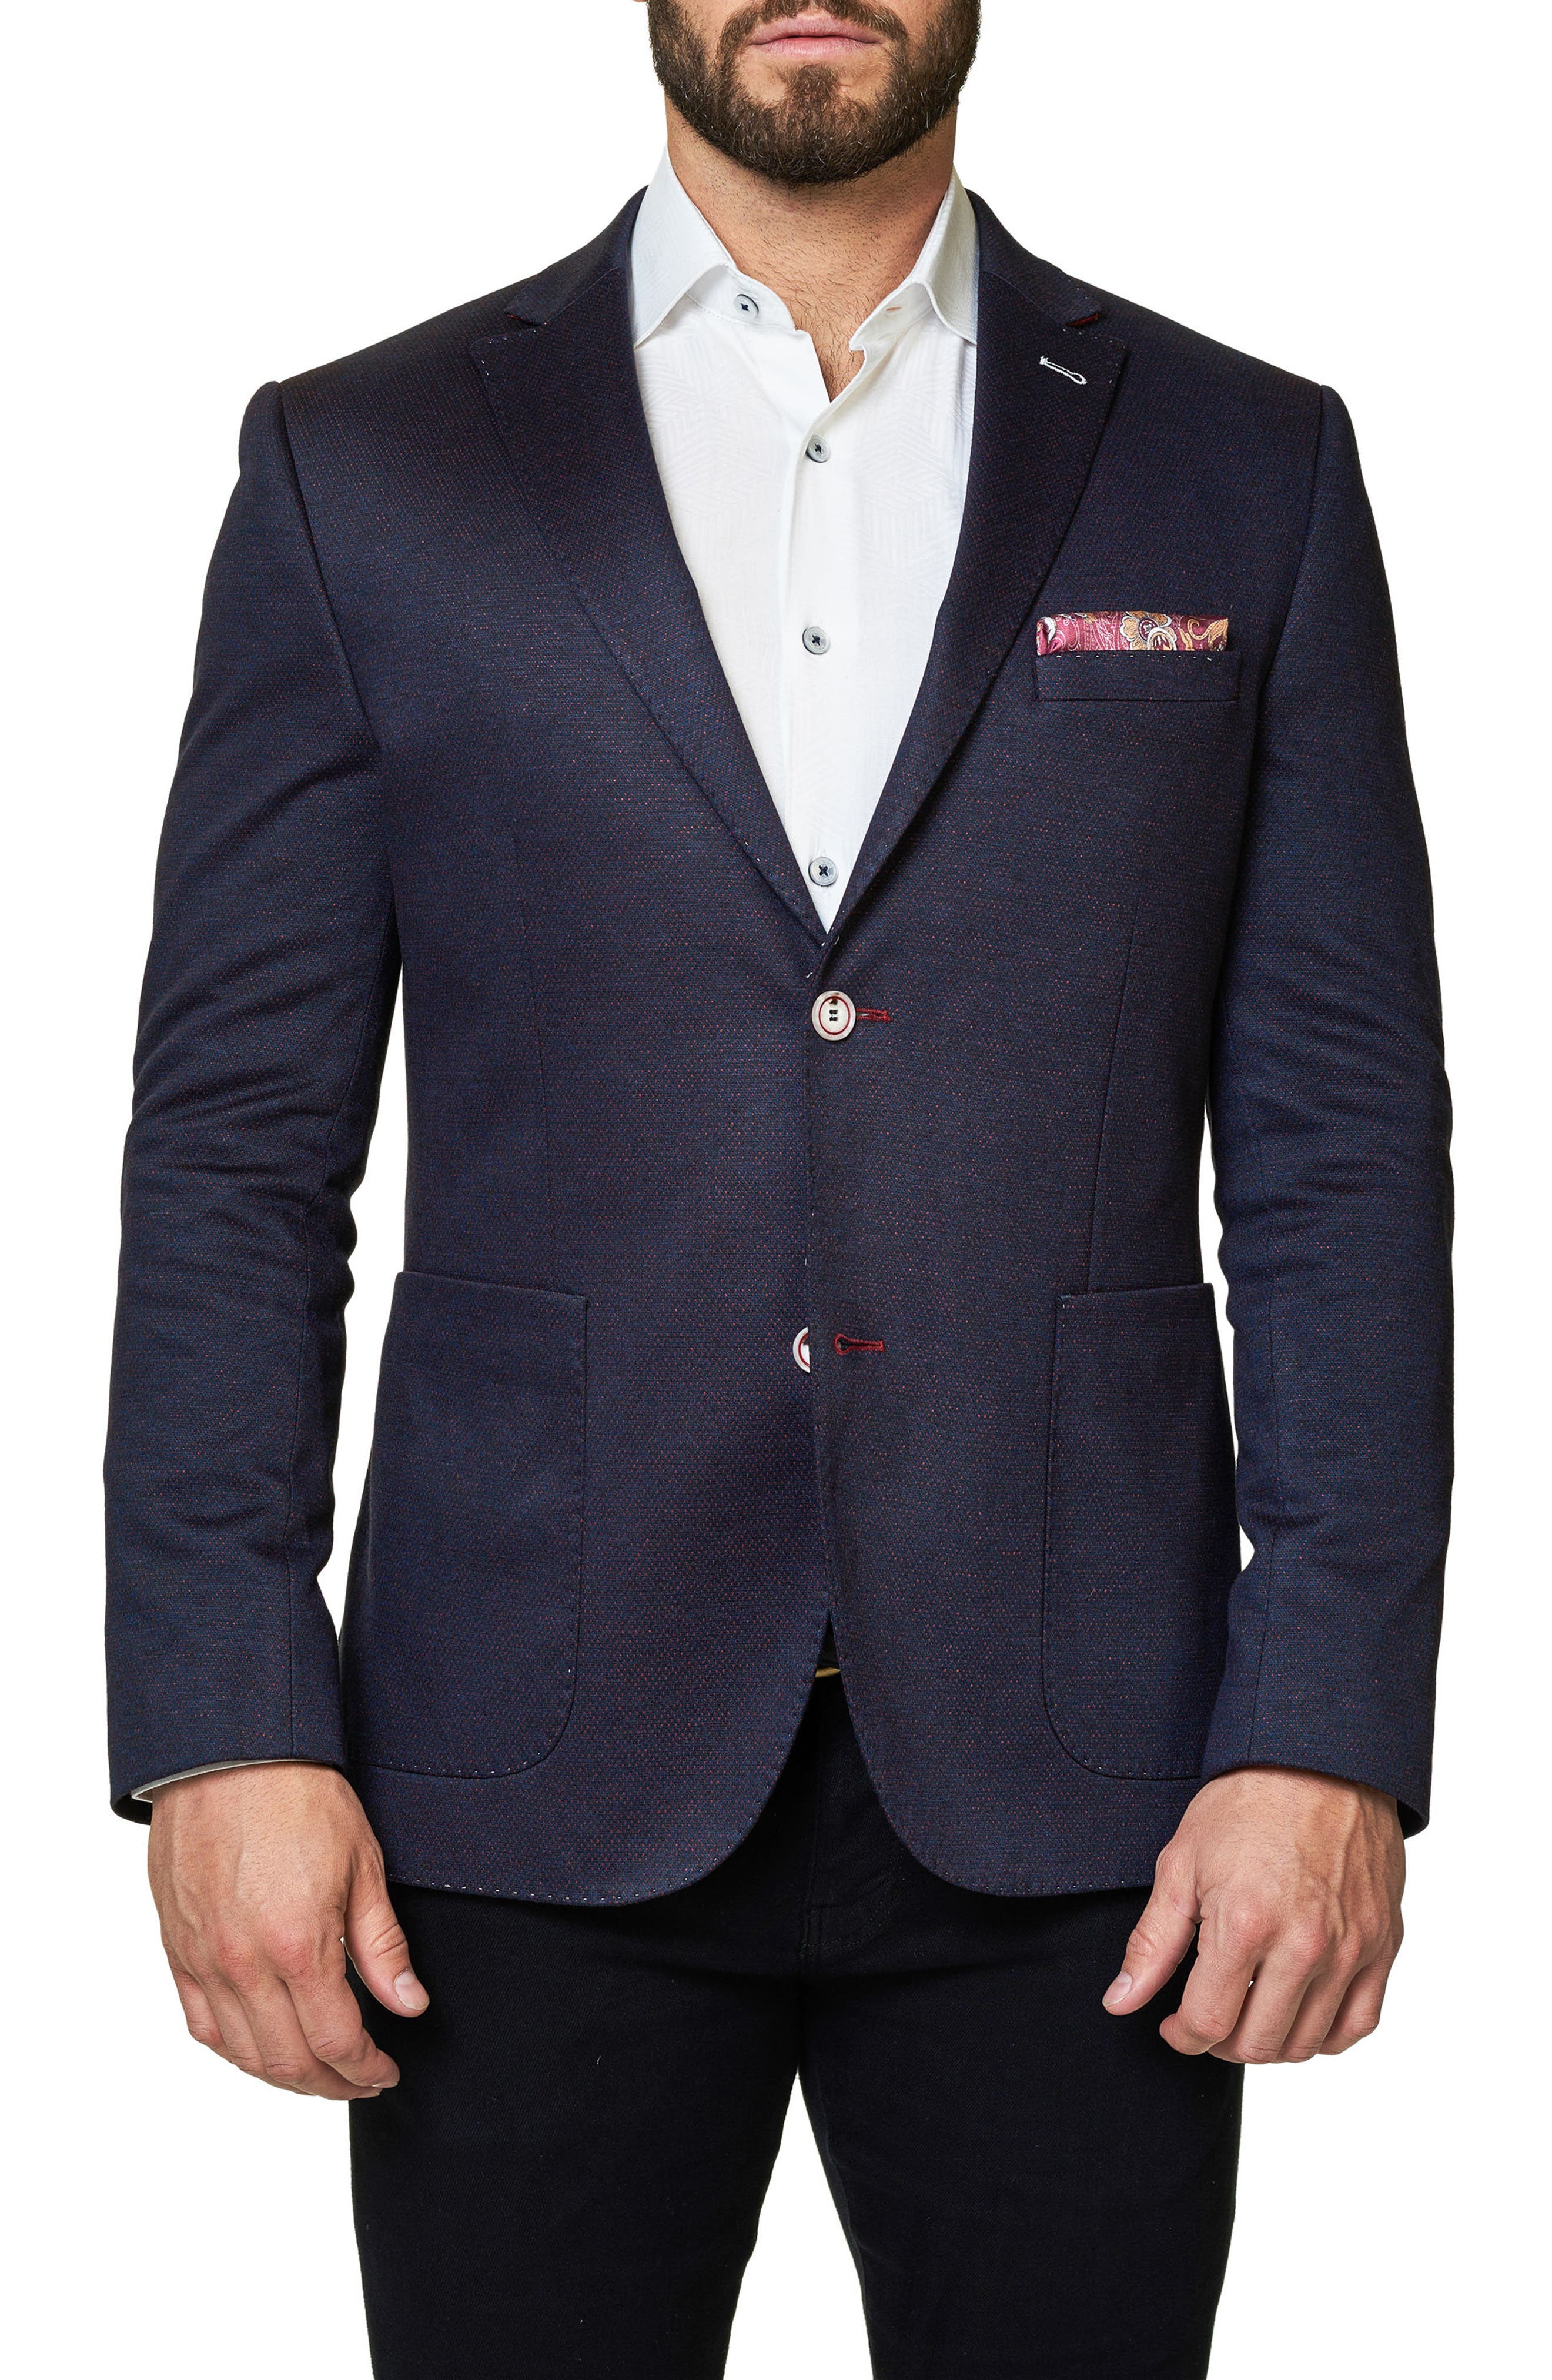 Alternate Image 1 Selected - Maceoo Slim Fit Jacquard Blazer